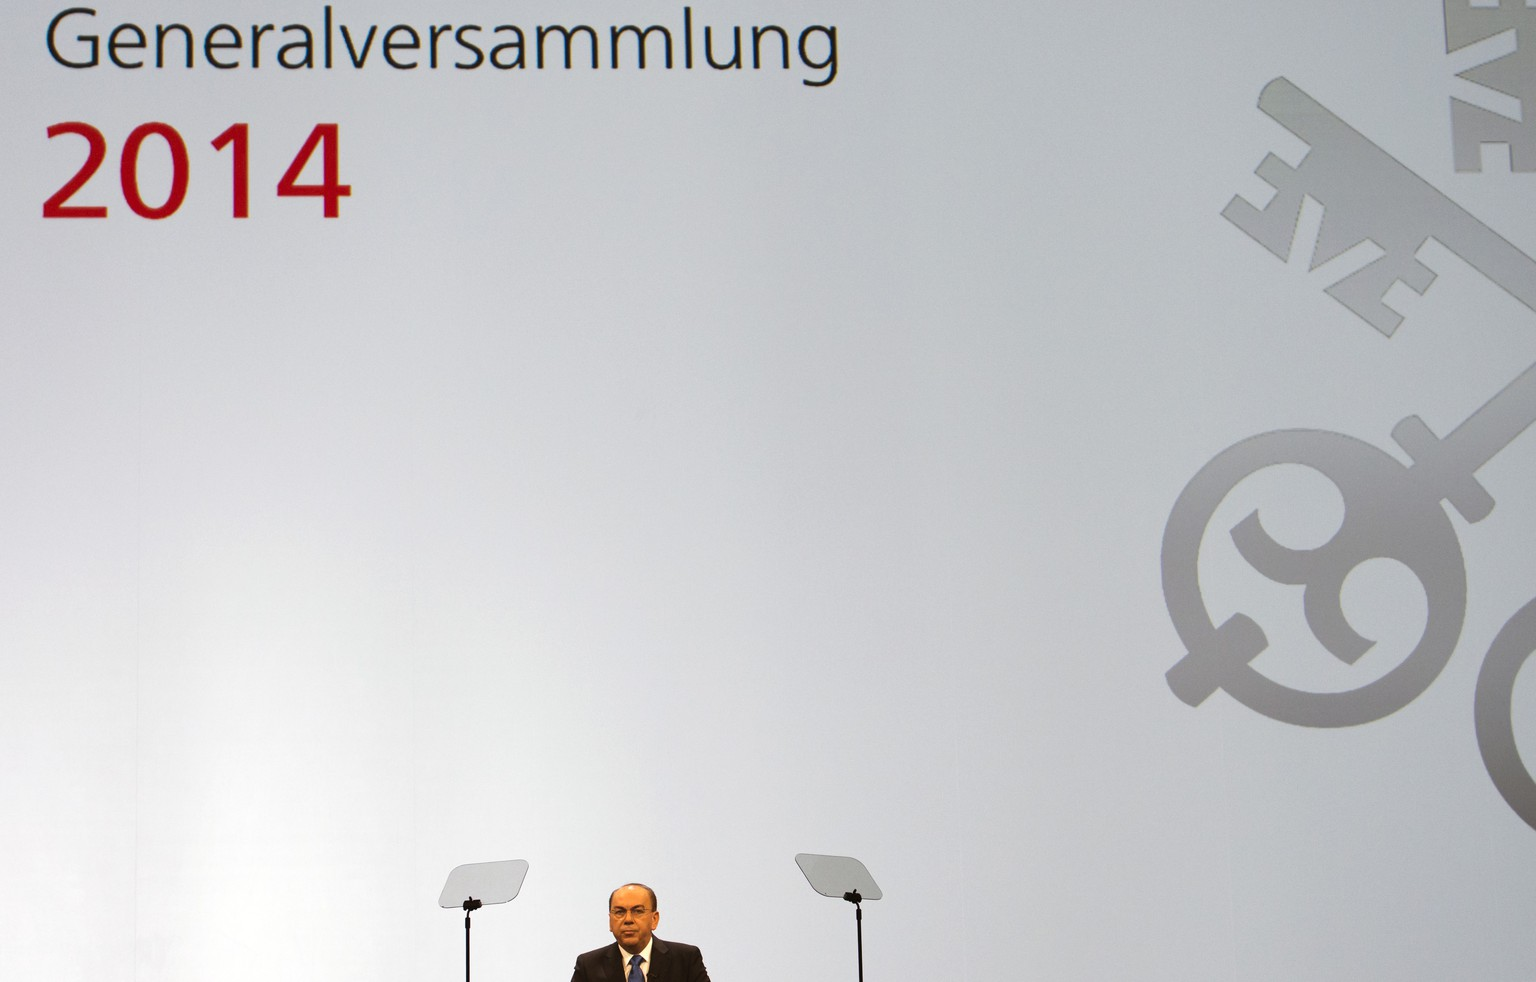 Axel A. Weber, chairman of the board of directors of Swiss Bank UBS, talks during the UBS general assembly in Basel, Switzerland, on Wednesday, May 7, 2014. (KEYSTONE/Georgios Kefalas)